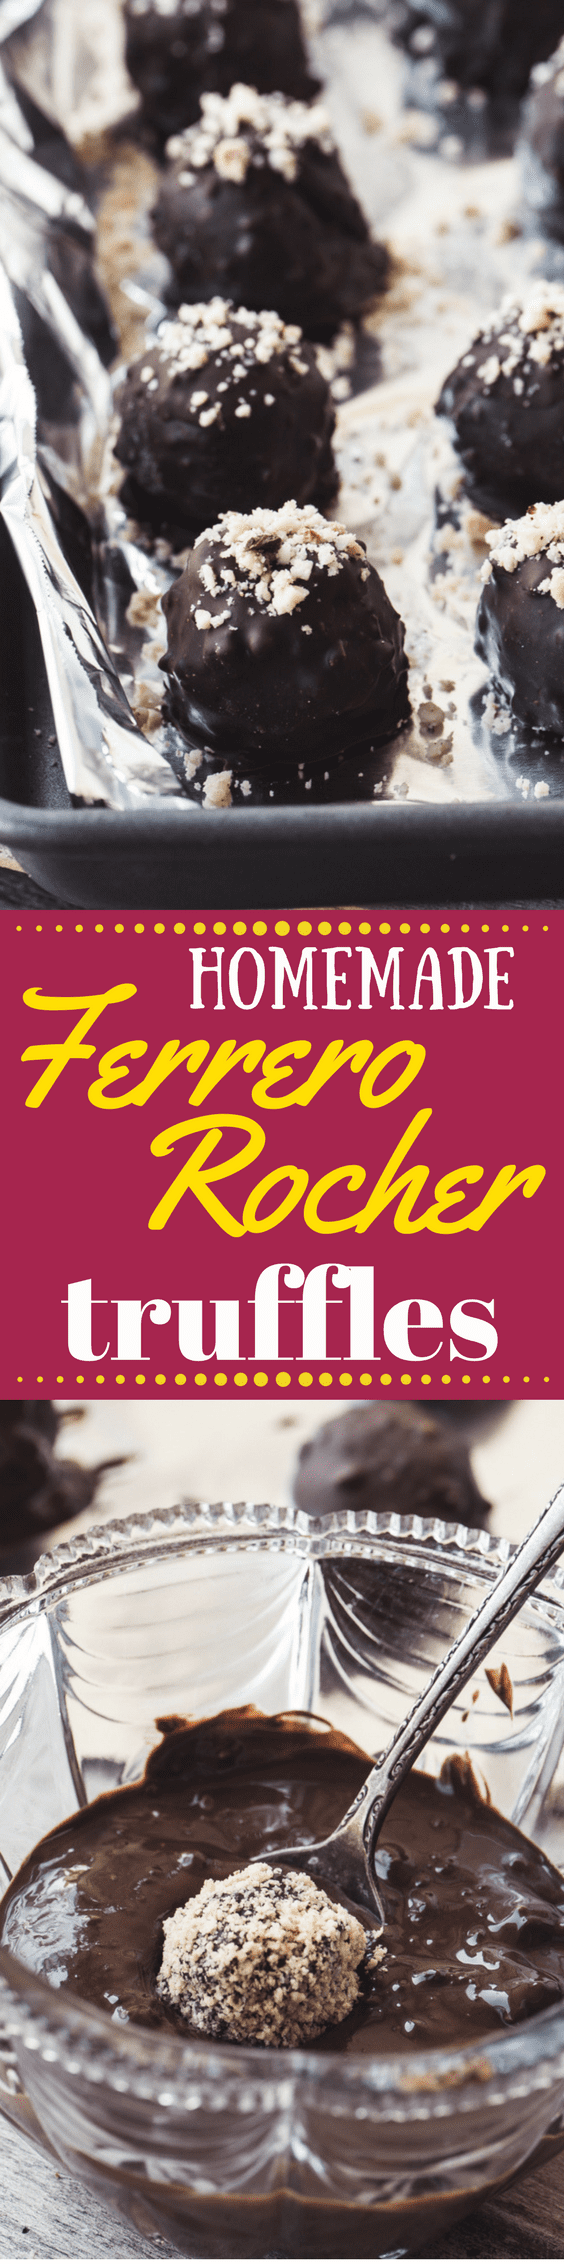 How to Make Homemade Ferrero Rocher Truffles ~ these DIY hazelnut chocolate truffles are going to make you VERY popular with friends and family...#candy #dessert #truffles #chocolate #candy #holidayfoodgift #holidaydessert #christmascandy #easytruffles #trufflerecipe